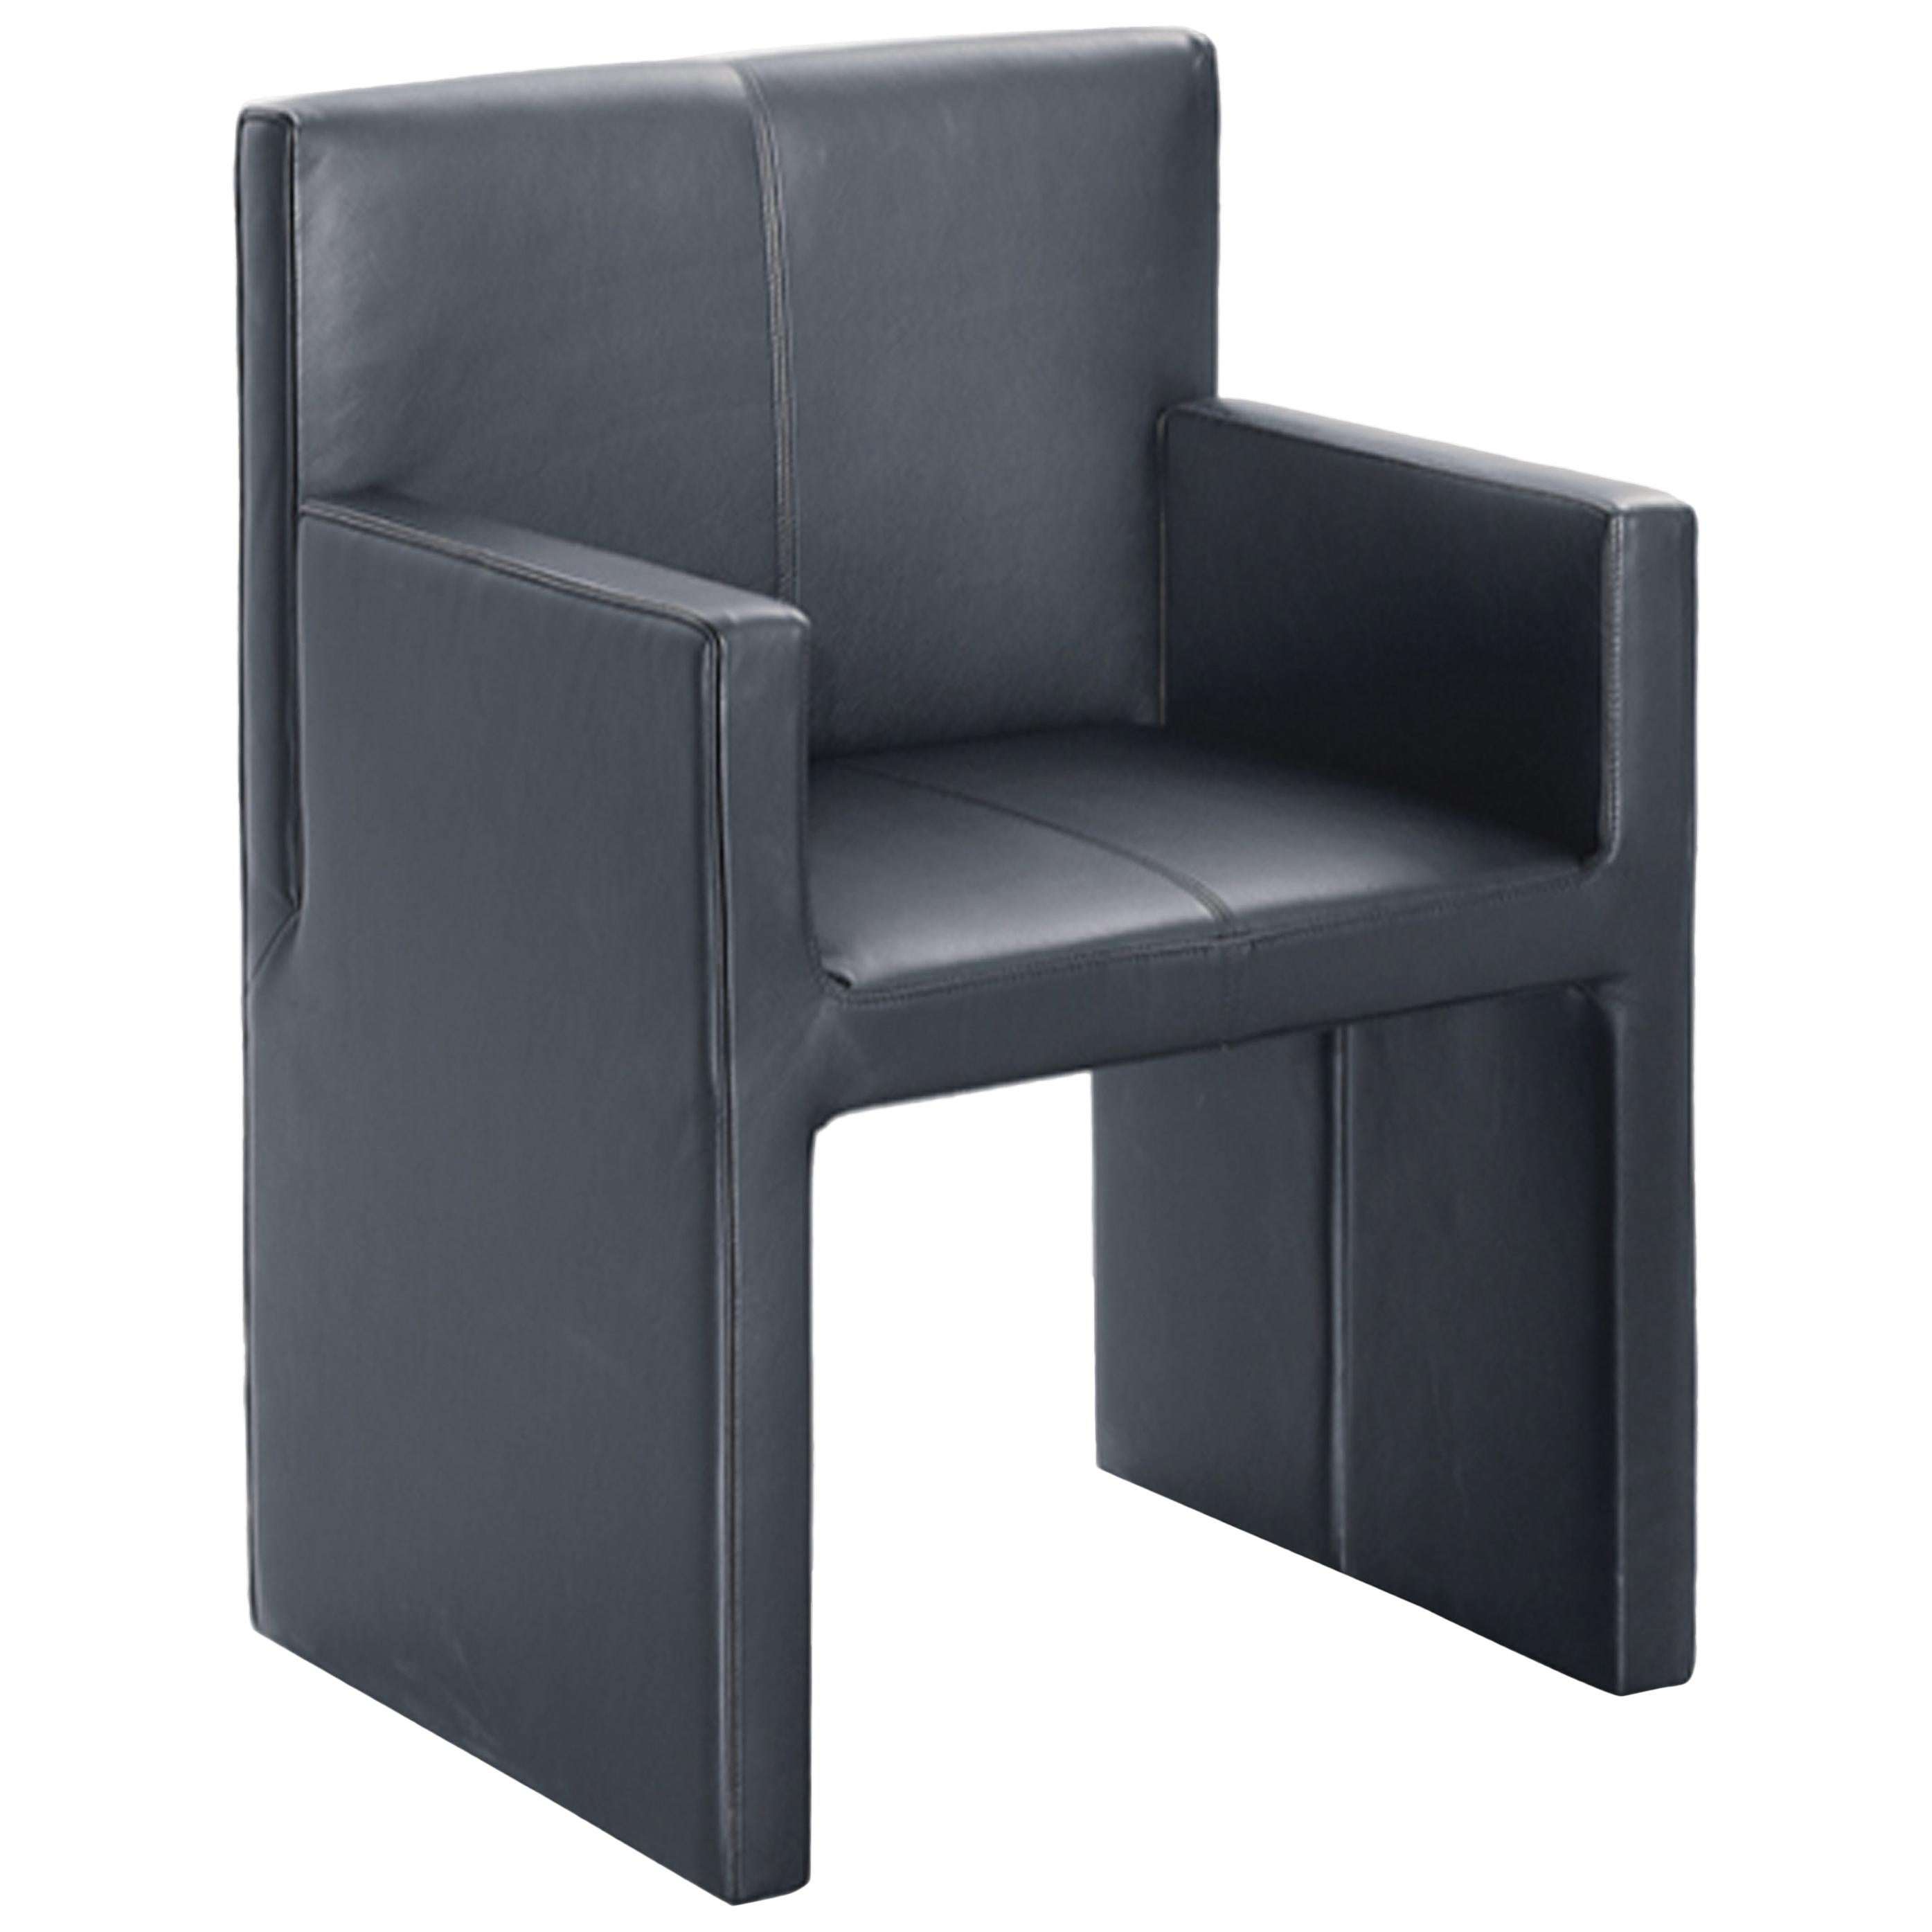 Wittmann Black Leather Corso Armchair